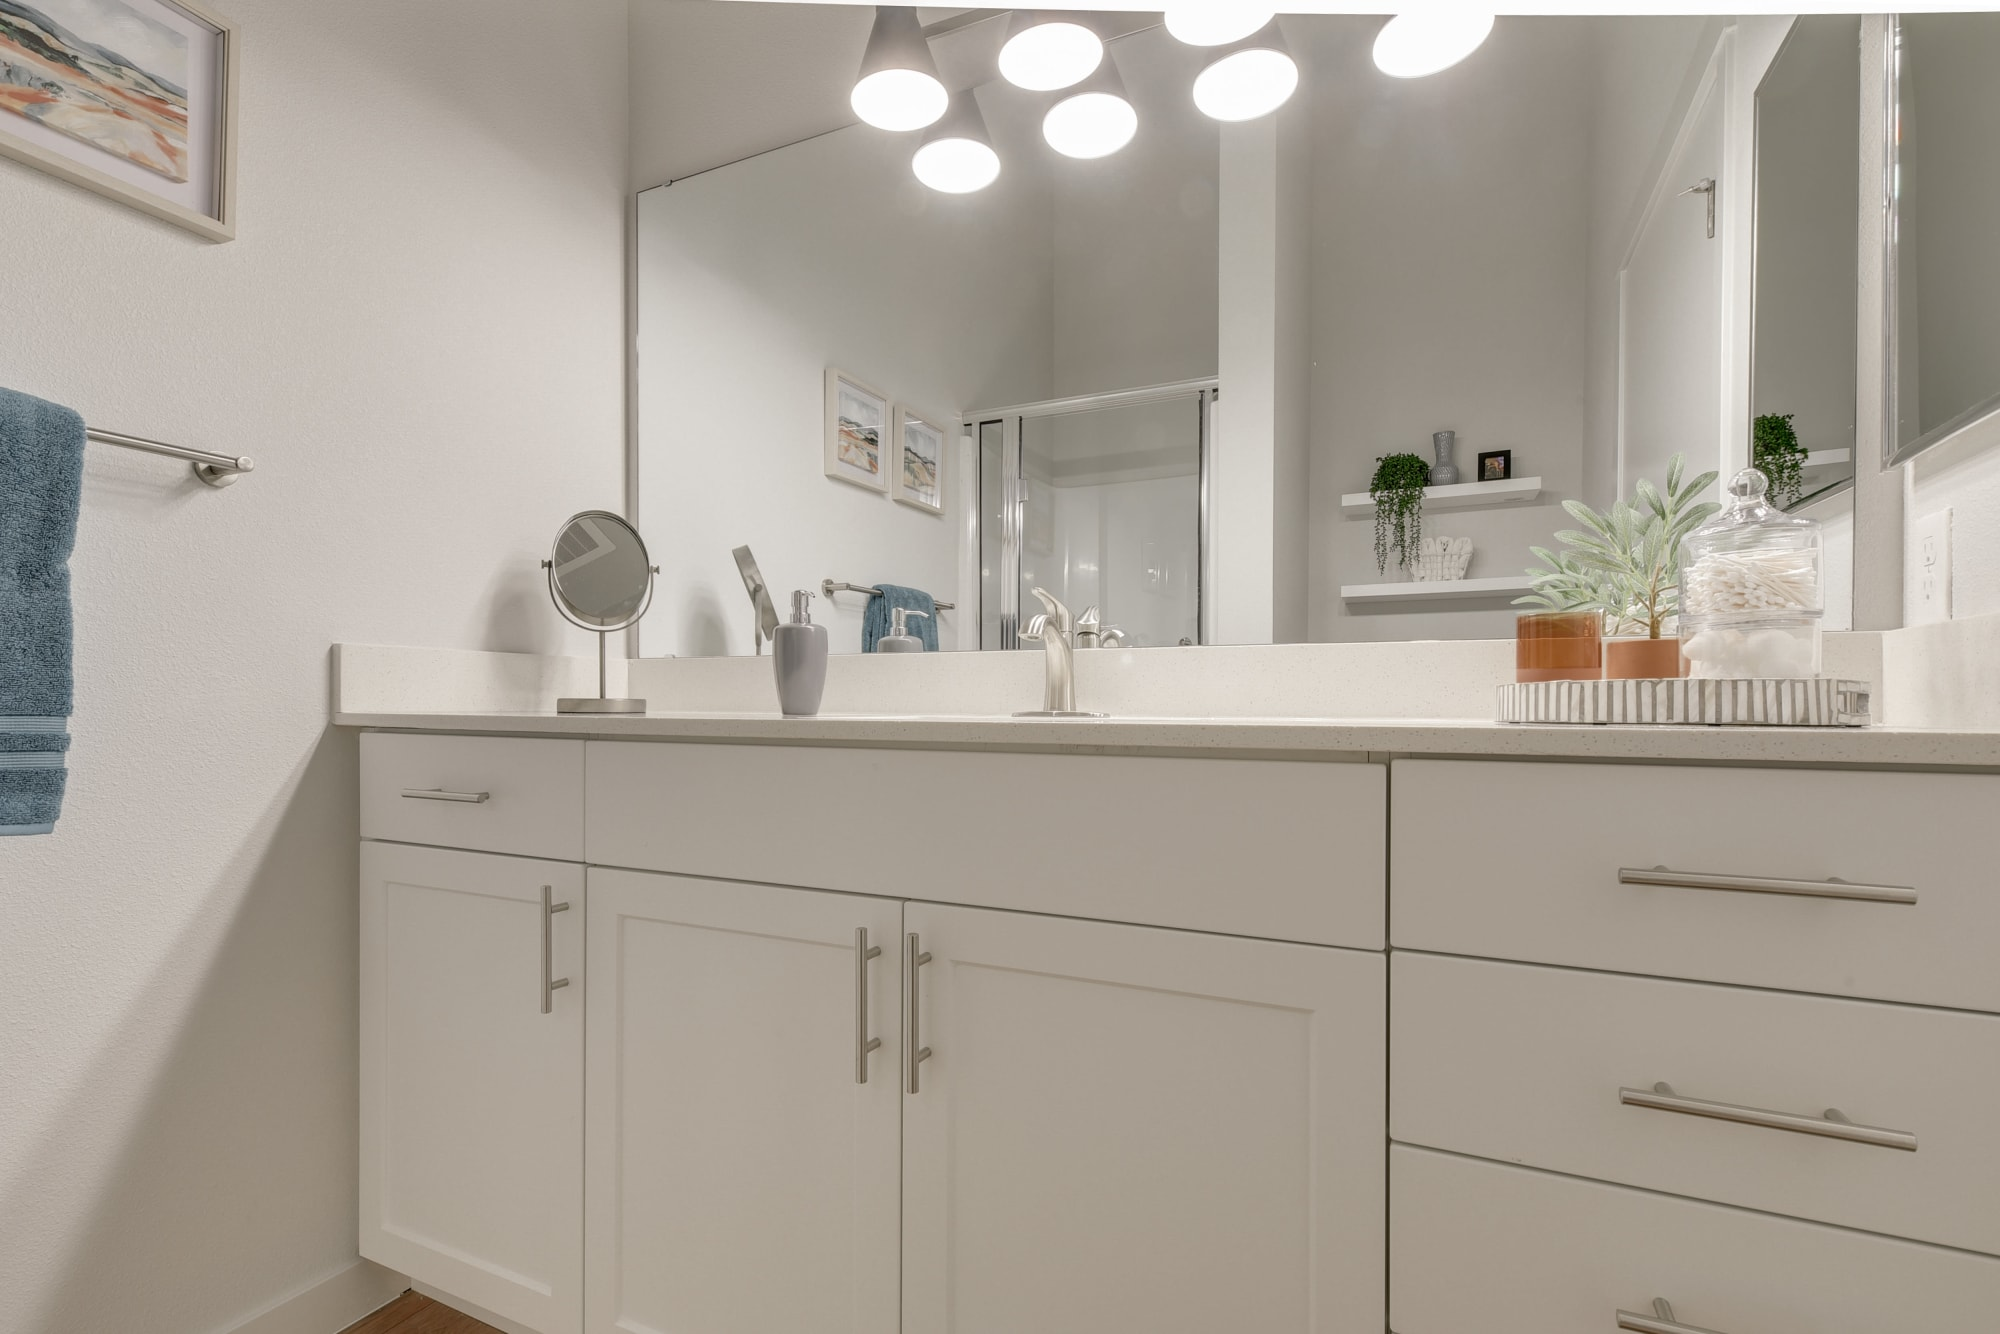 Model Bathroom with White Cabinets at Kestrel Park in Vancouver, Washington